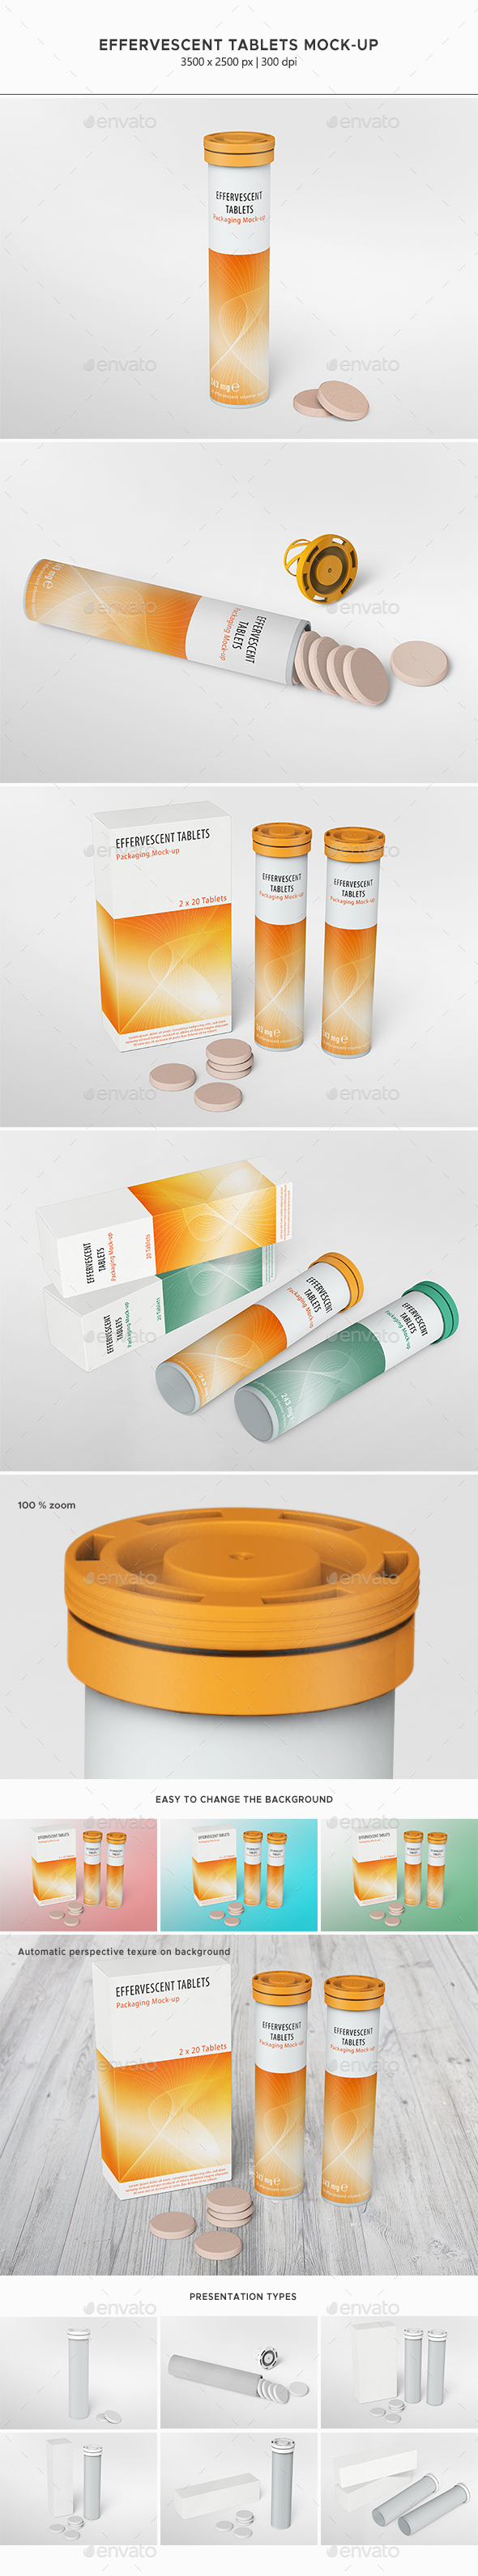 Effervescent Tablets Mock-up - Food and Drink Packaging